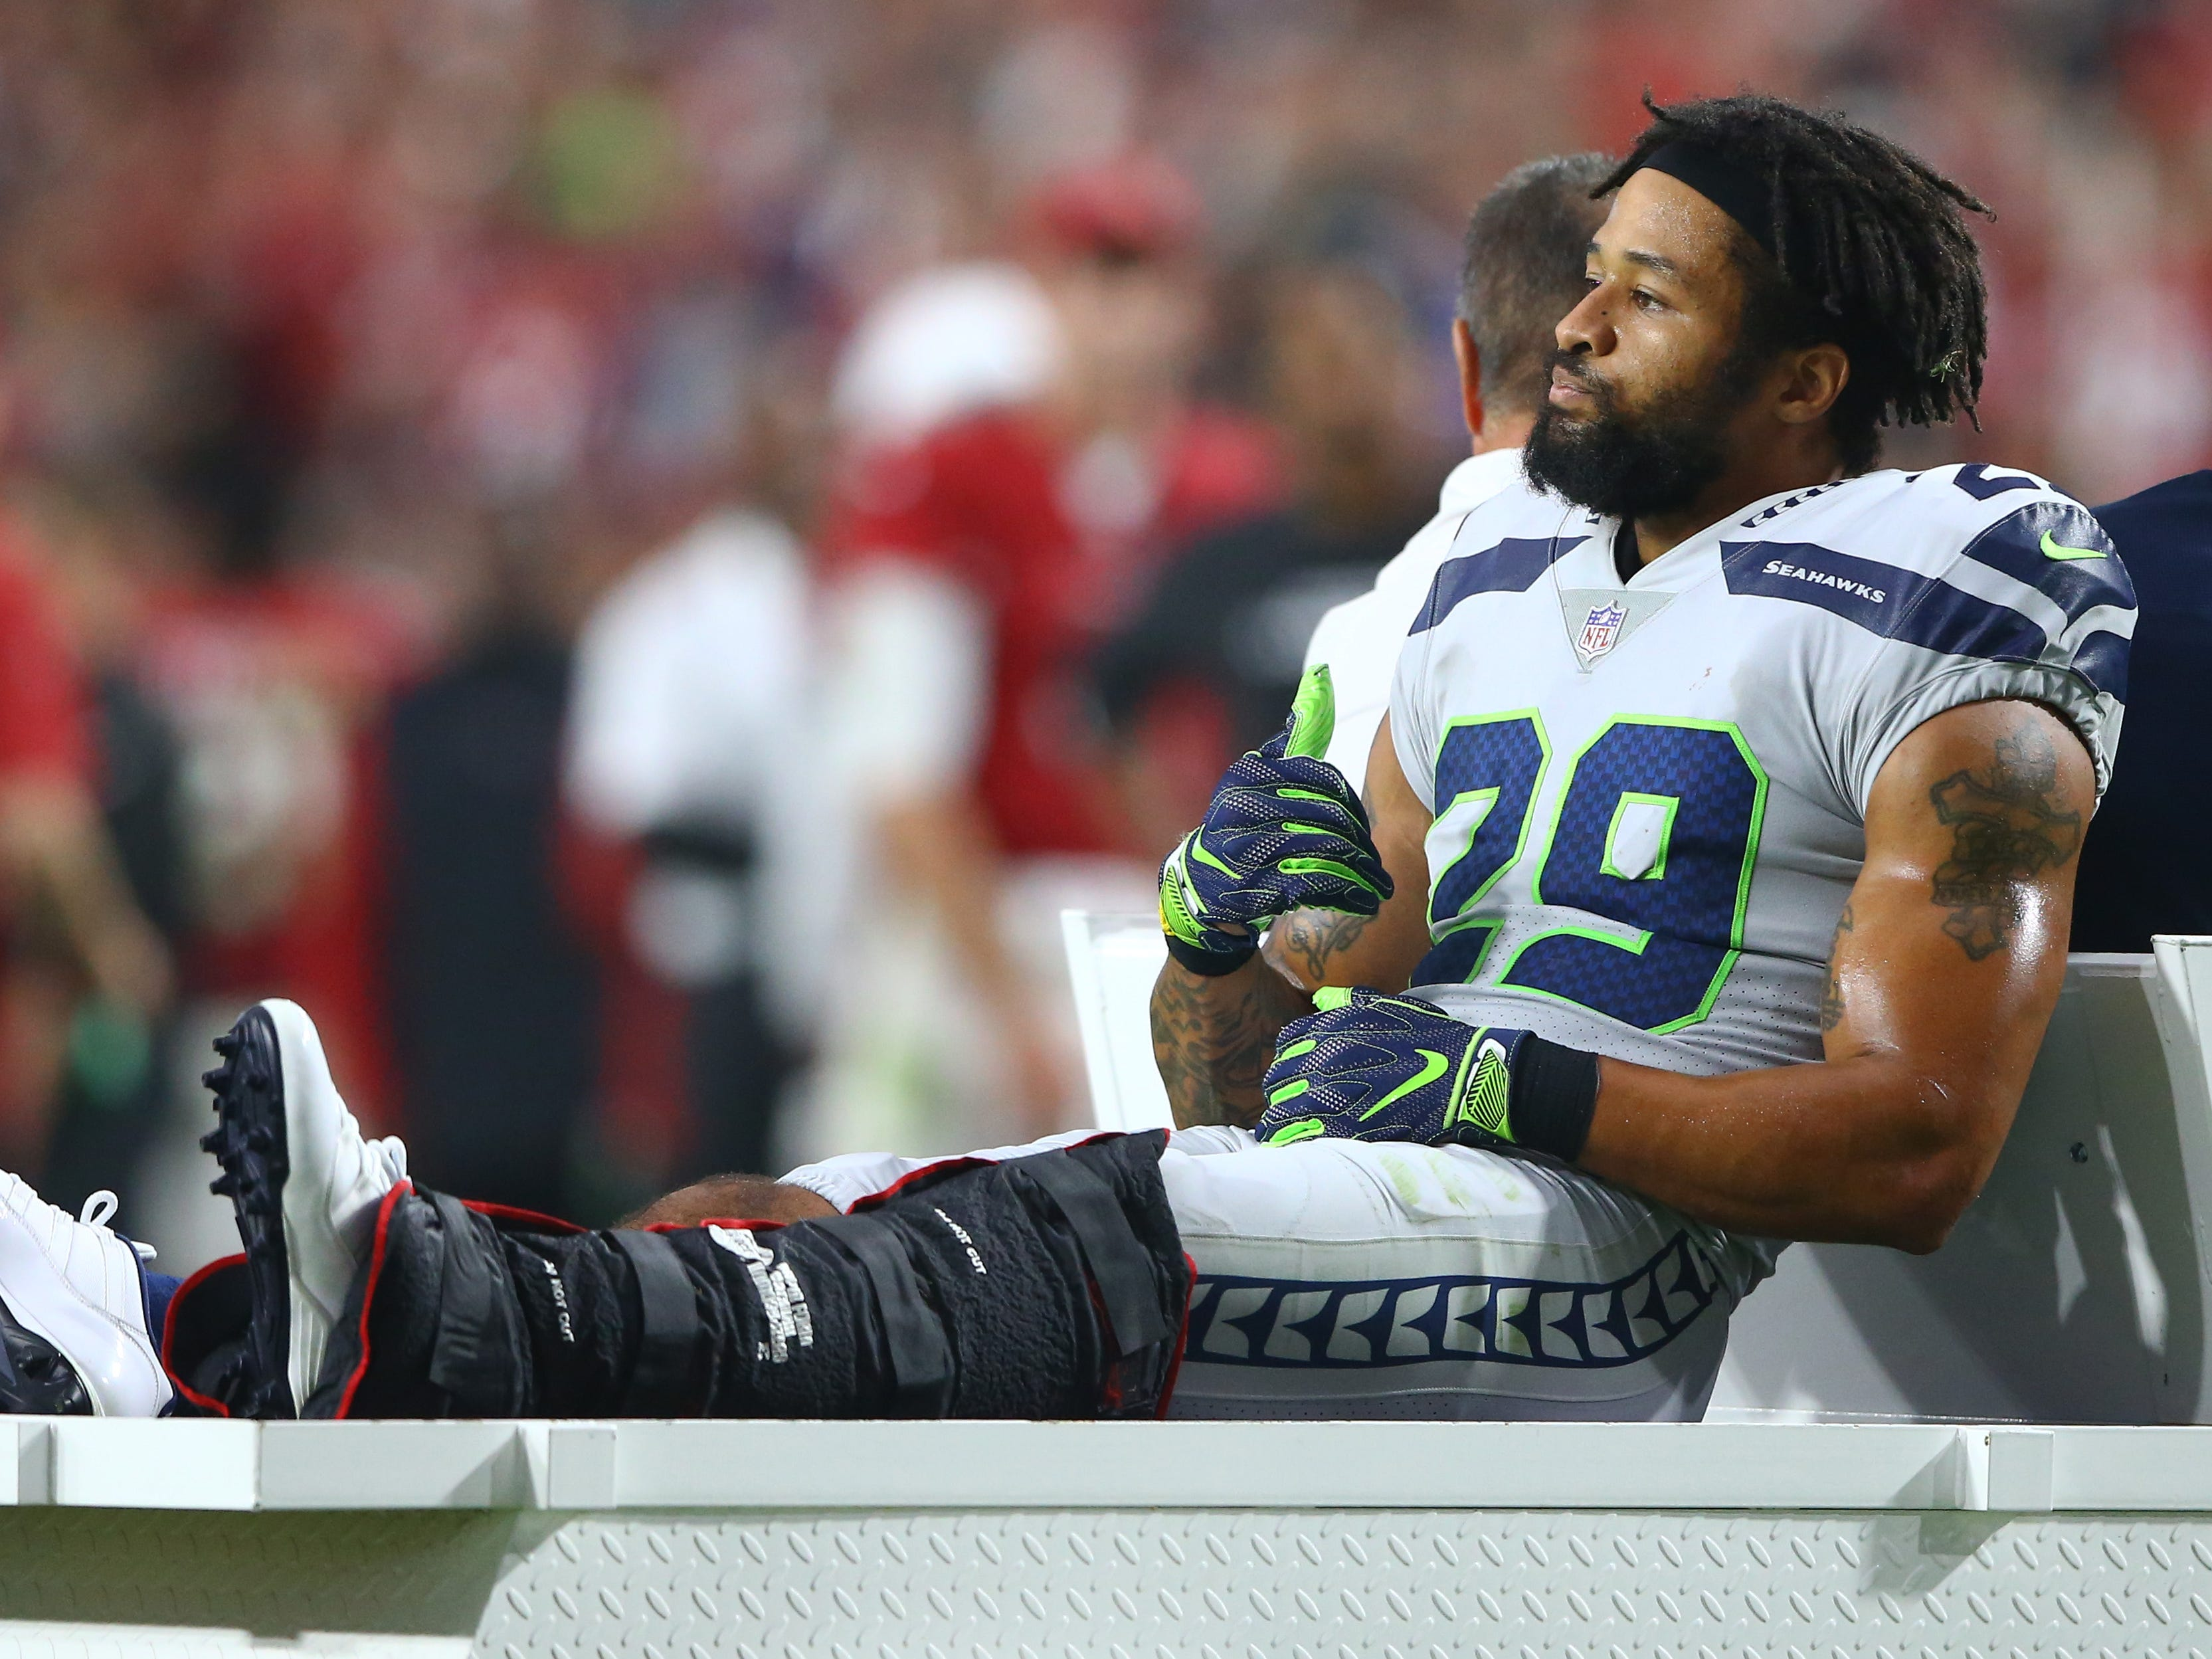 21. Seahawks (25): With owner Paul Allen again battling cancer, and S Earl Thomas breaking his leg, the local mood reflective of Seattle's autumn weather.